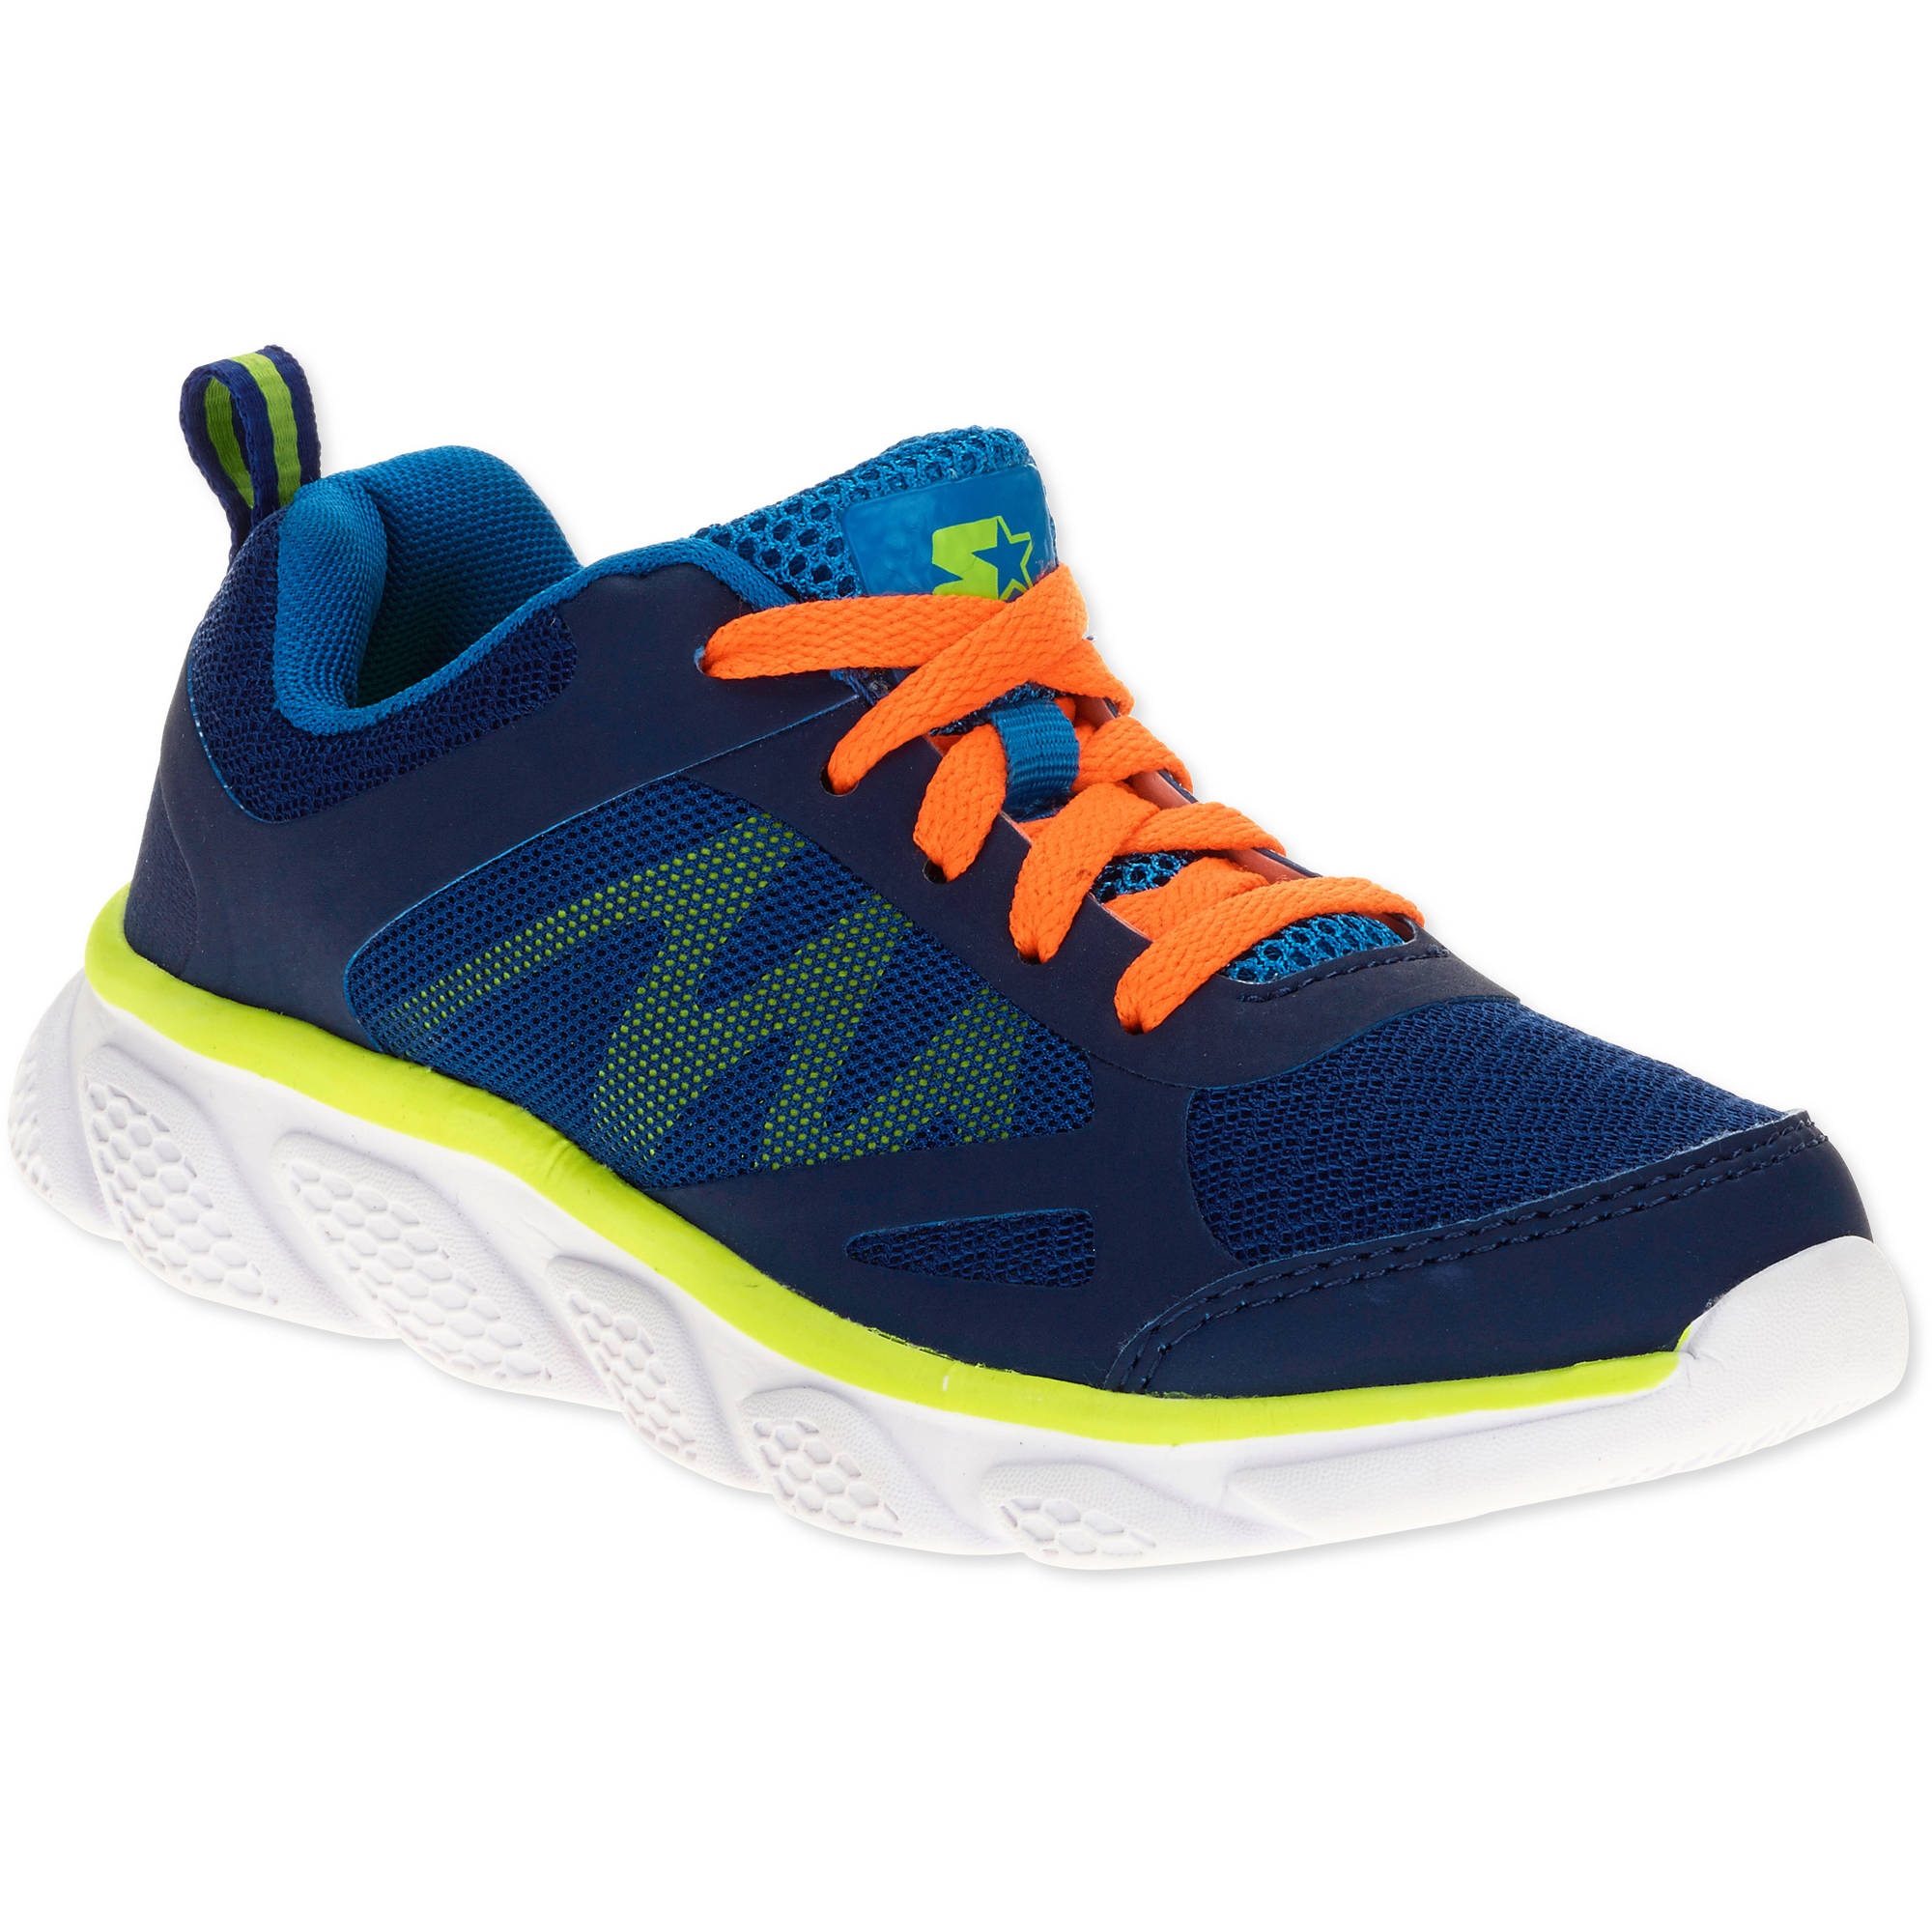 Starter Boy's Athletic Cross-Training Shoe